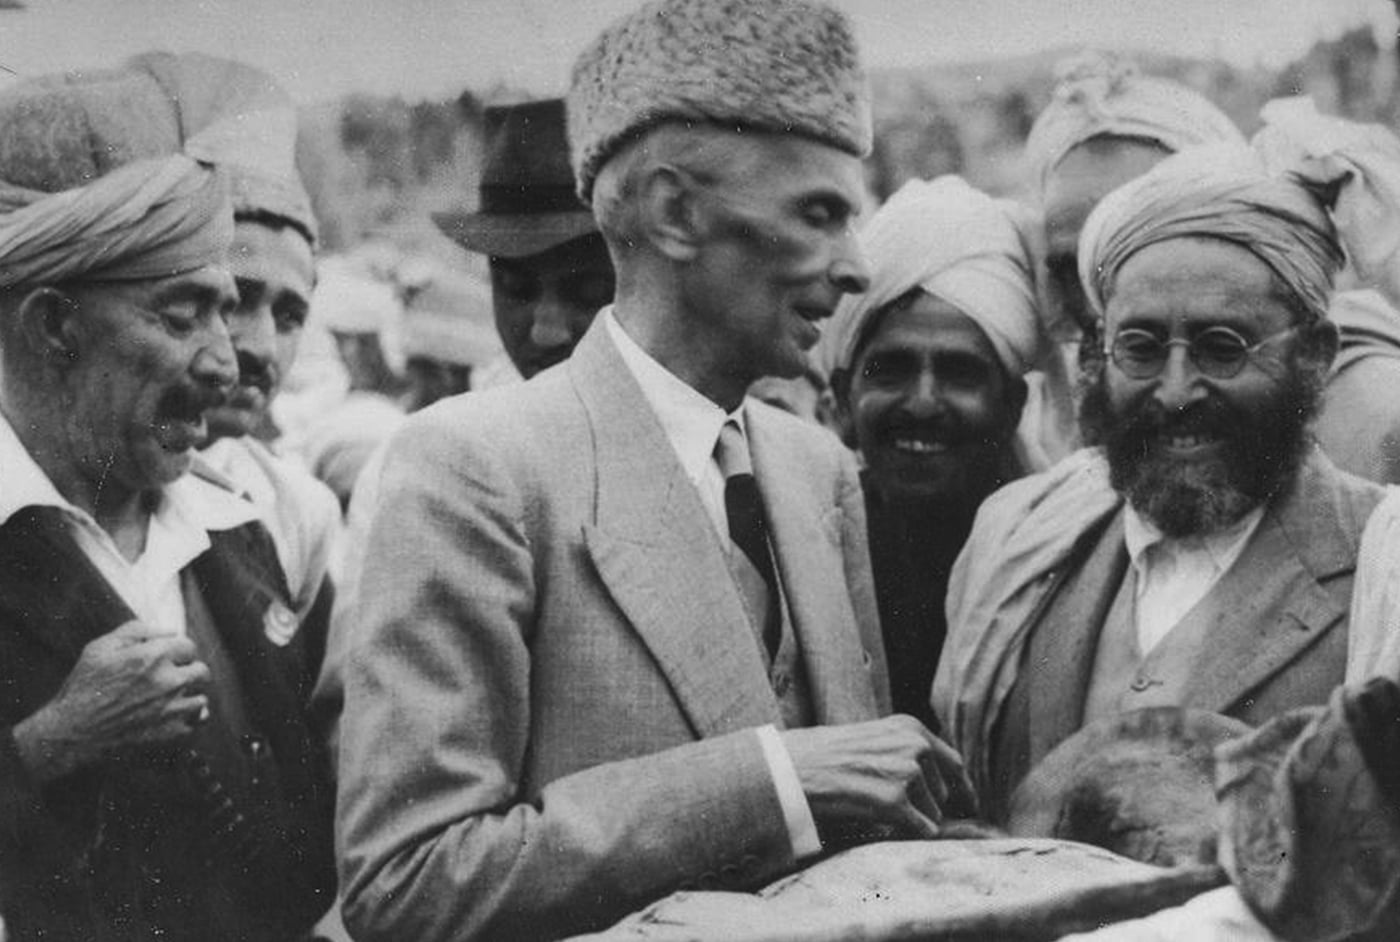 Quaid-i-Azam Mohammad Ali Jinnah is presented with a traditional loaf of bread in Peshawar by Afridi chiefs in November 1945. — Courtesy National Archives Islamabad